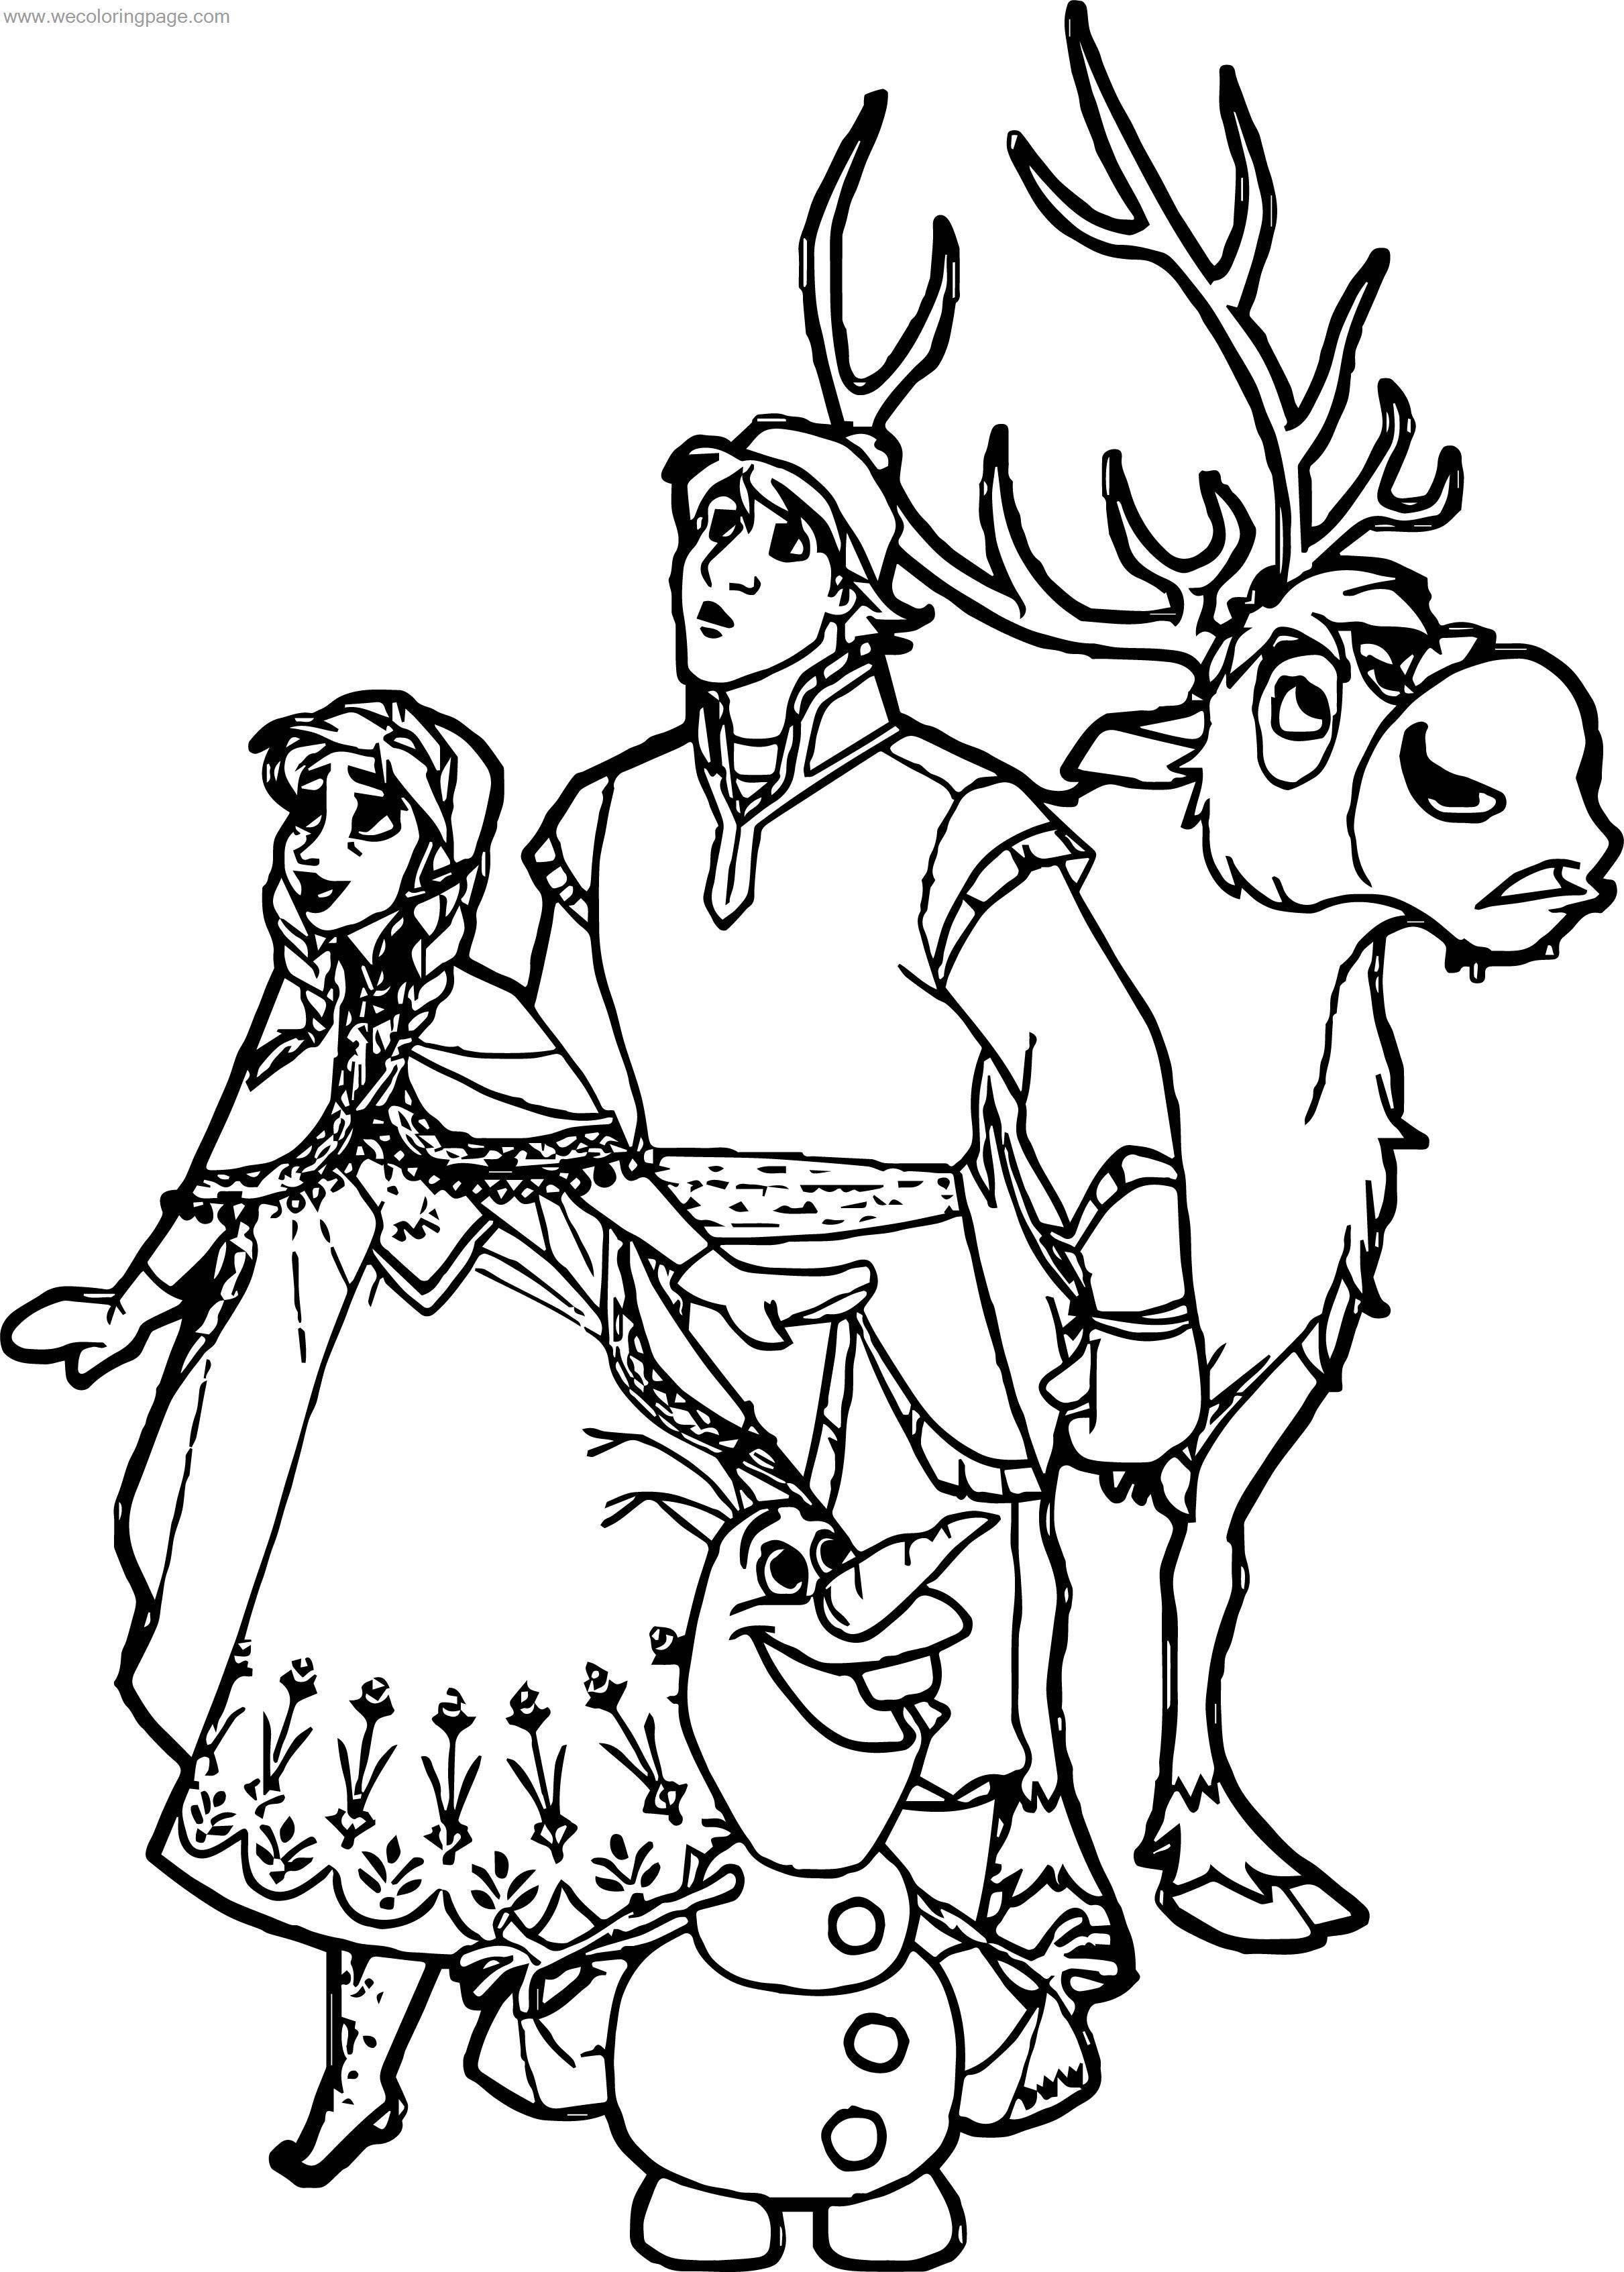 Kristoff Frozen Coloring Pages - Free Coloring Page